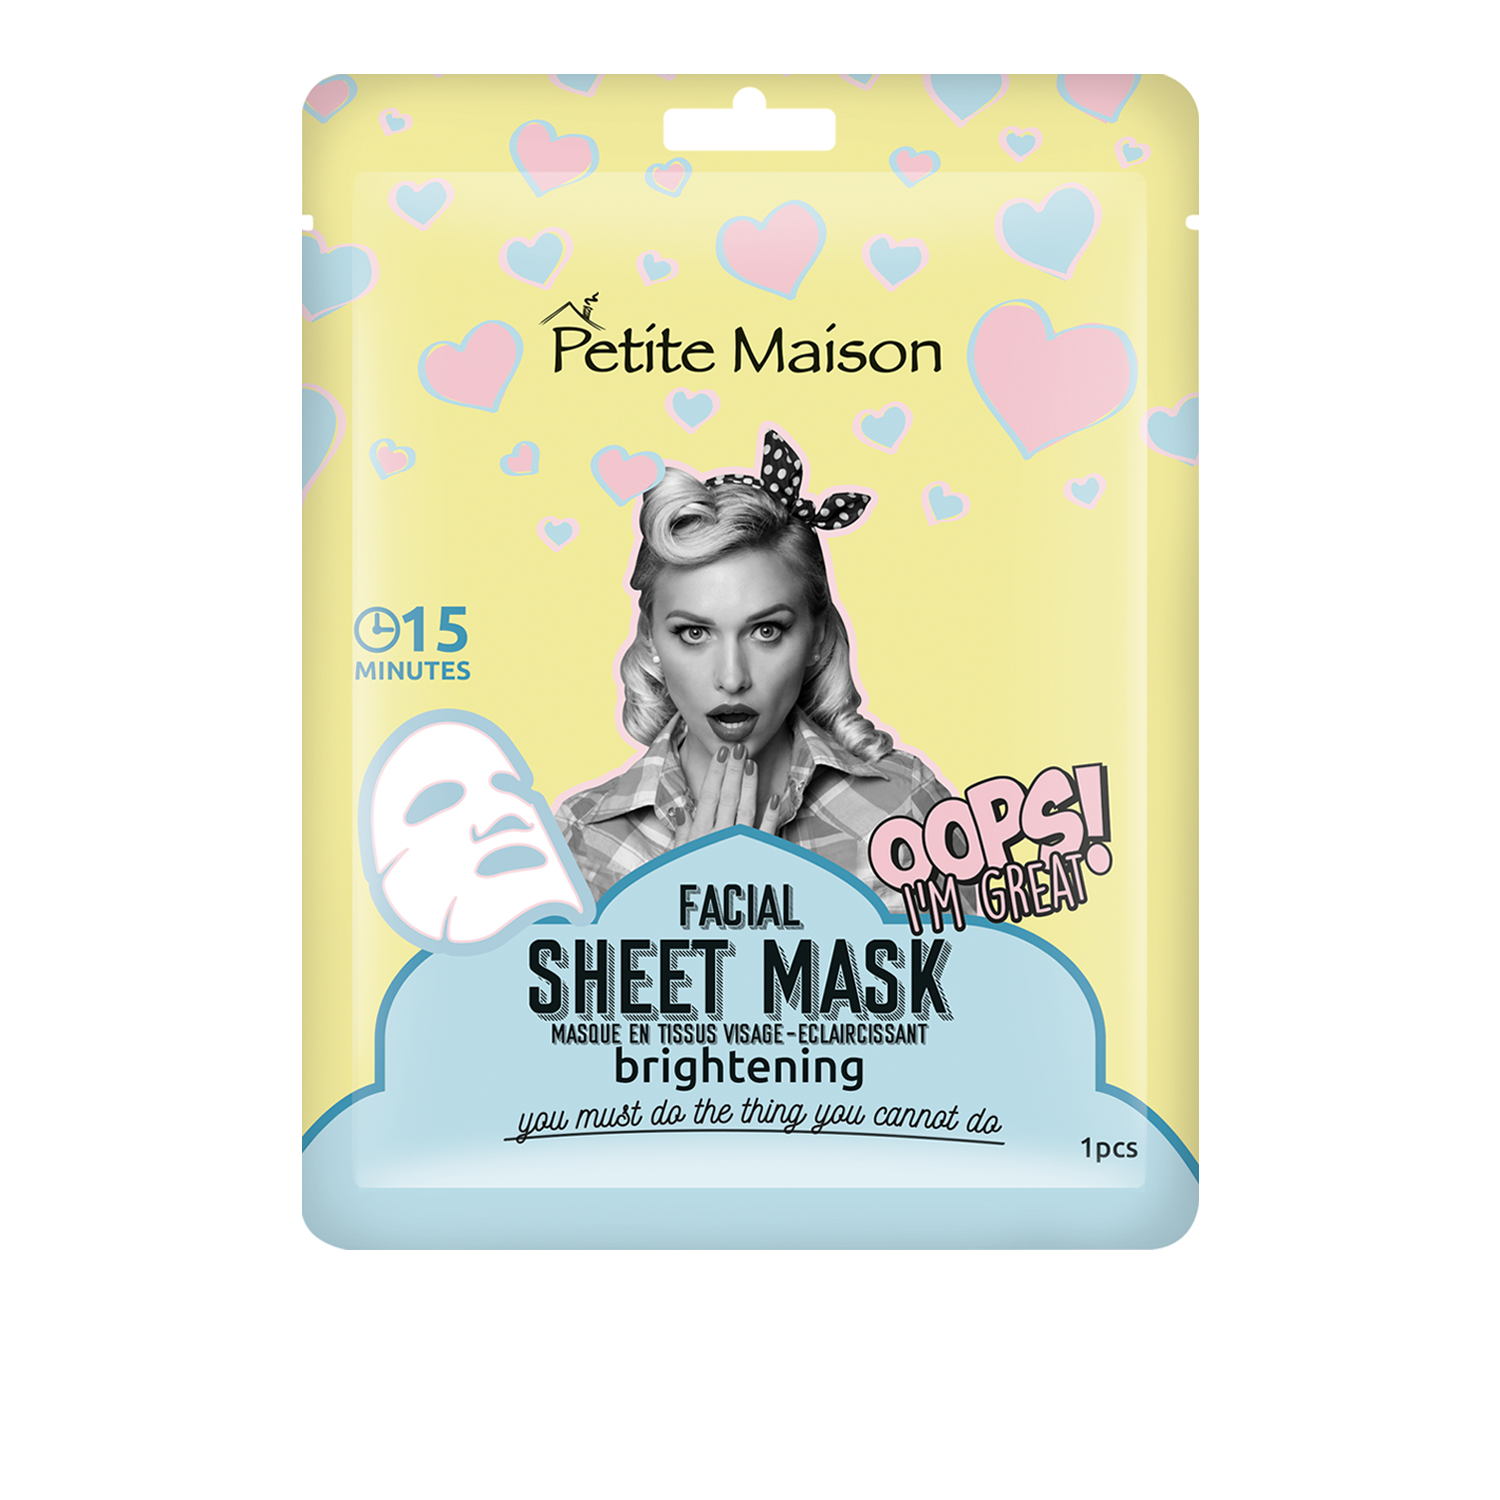 Petite Maison Sheet Mask Brightening